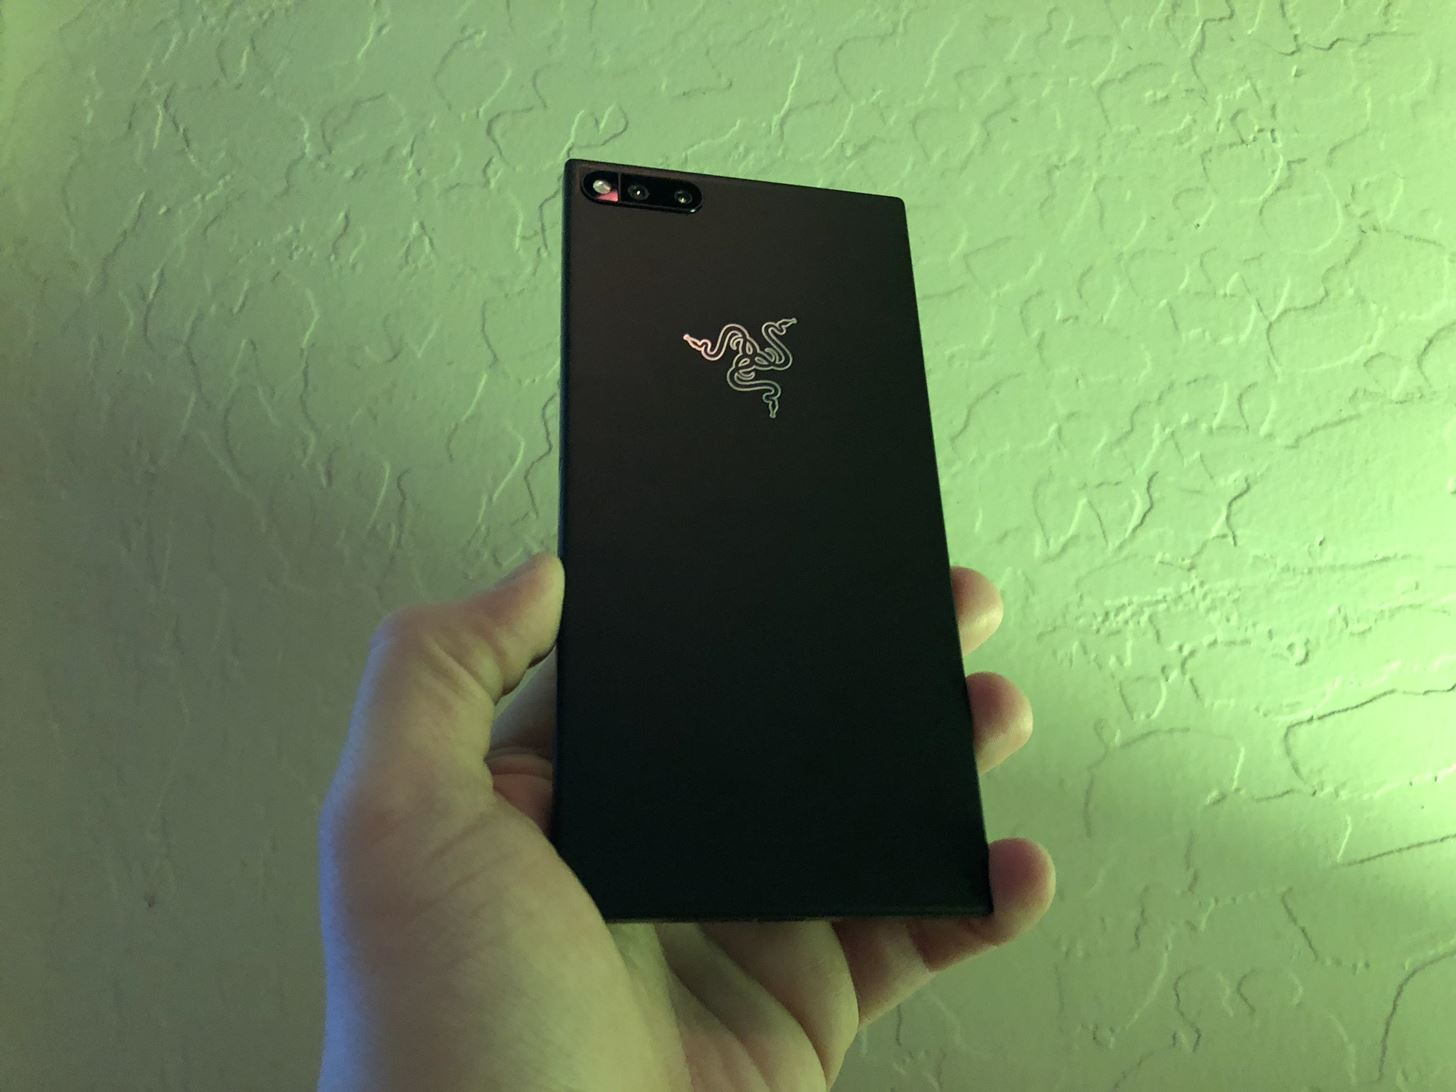 Ranked: The 4 Best Phones for Gaming